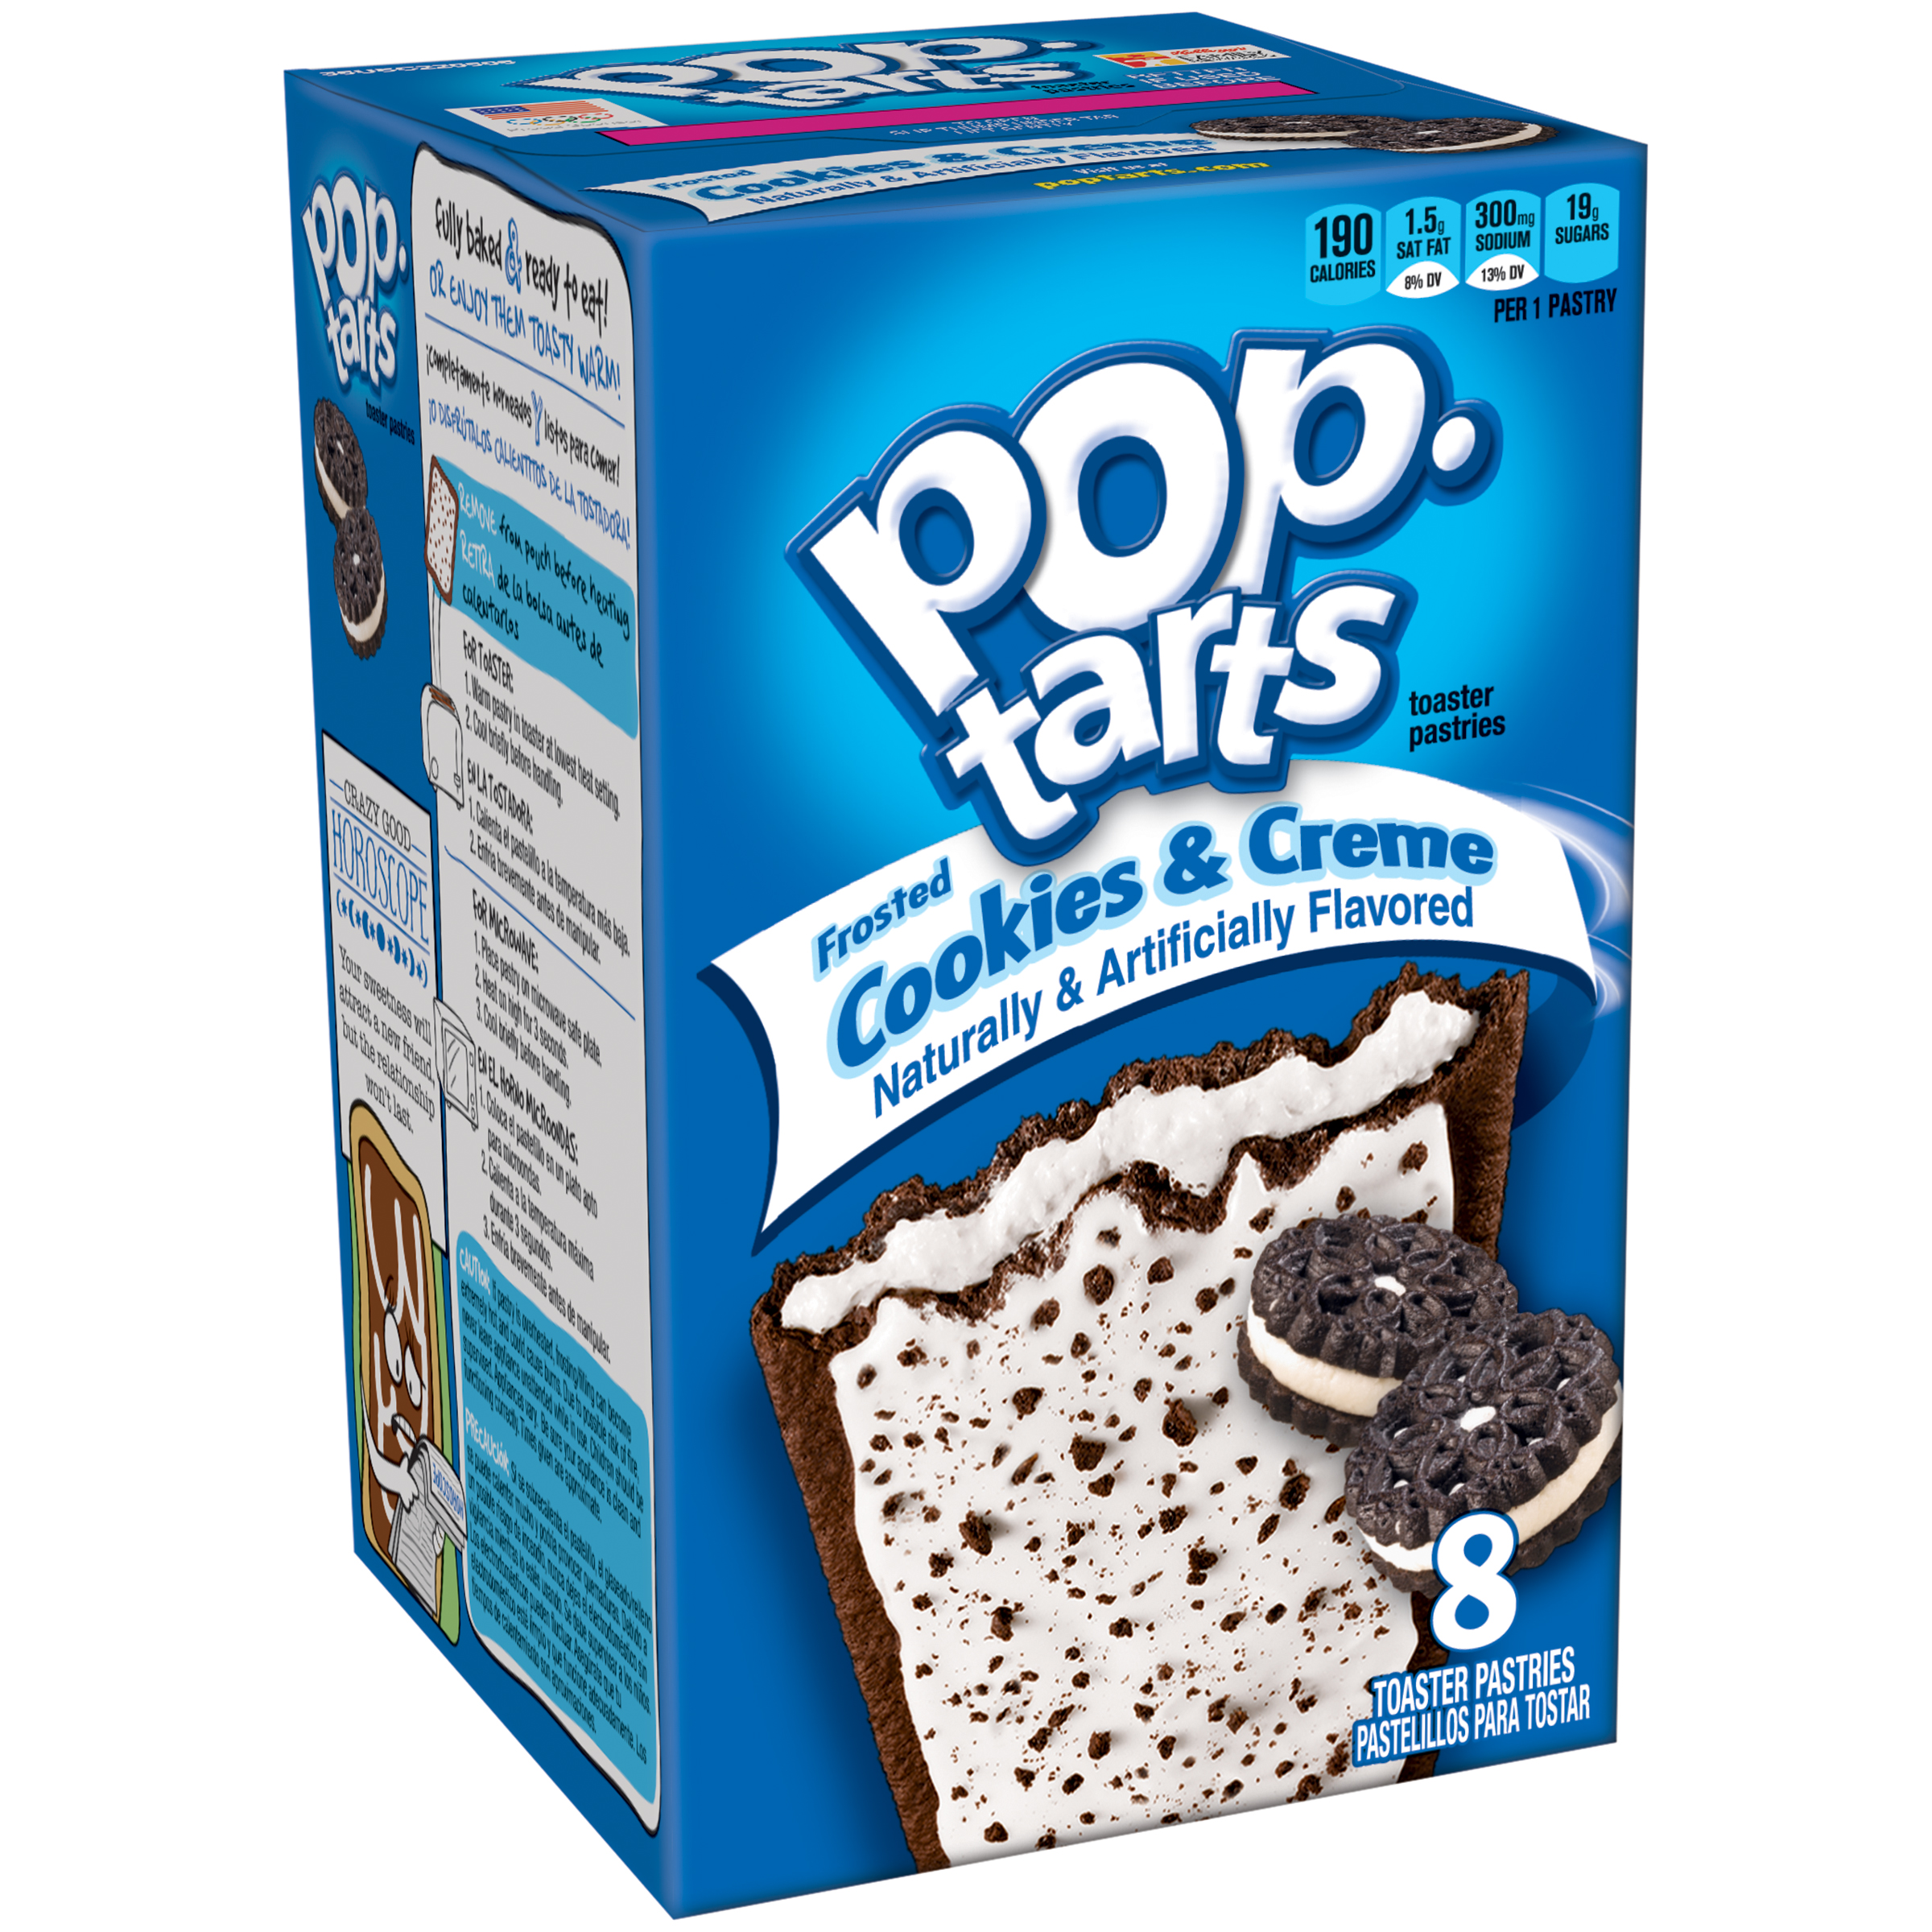 Kellogg's Pop-Tarts Frosted Cookies & Creme Toaster Pastries, 14.1 oz